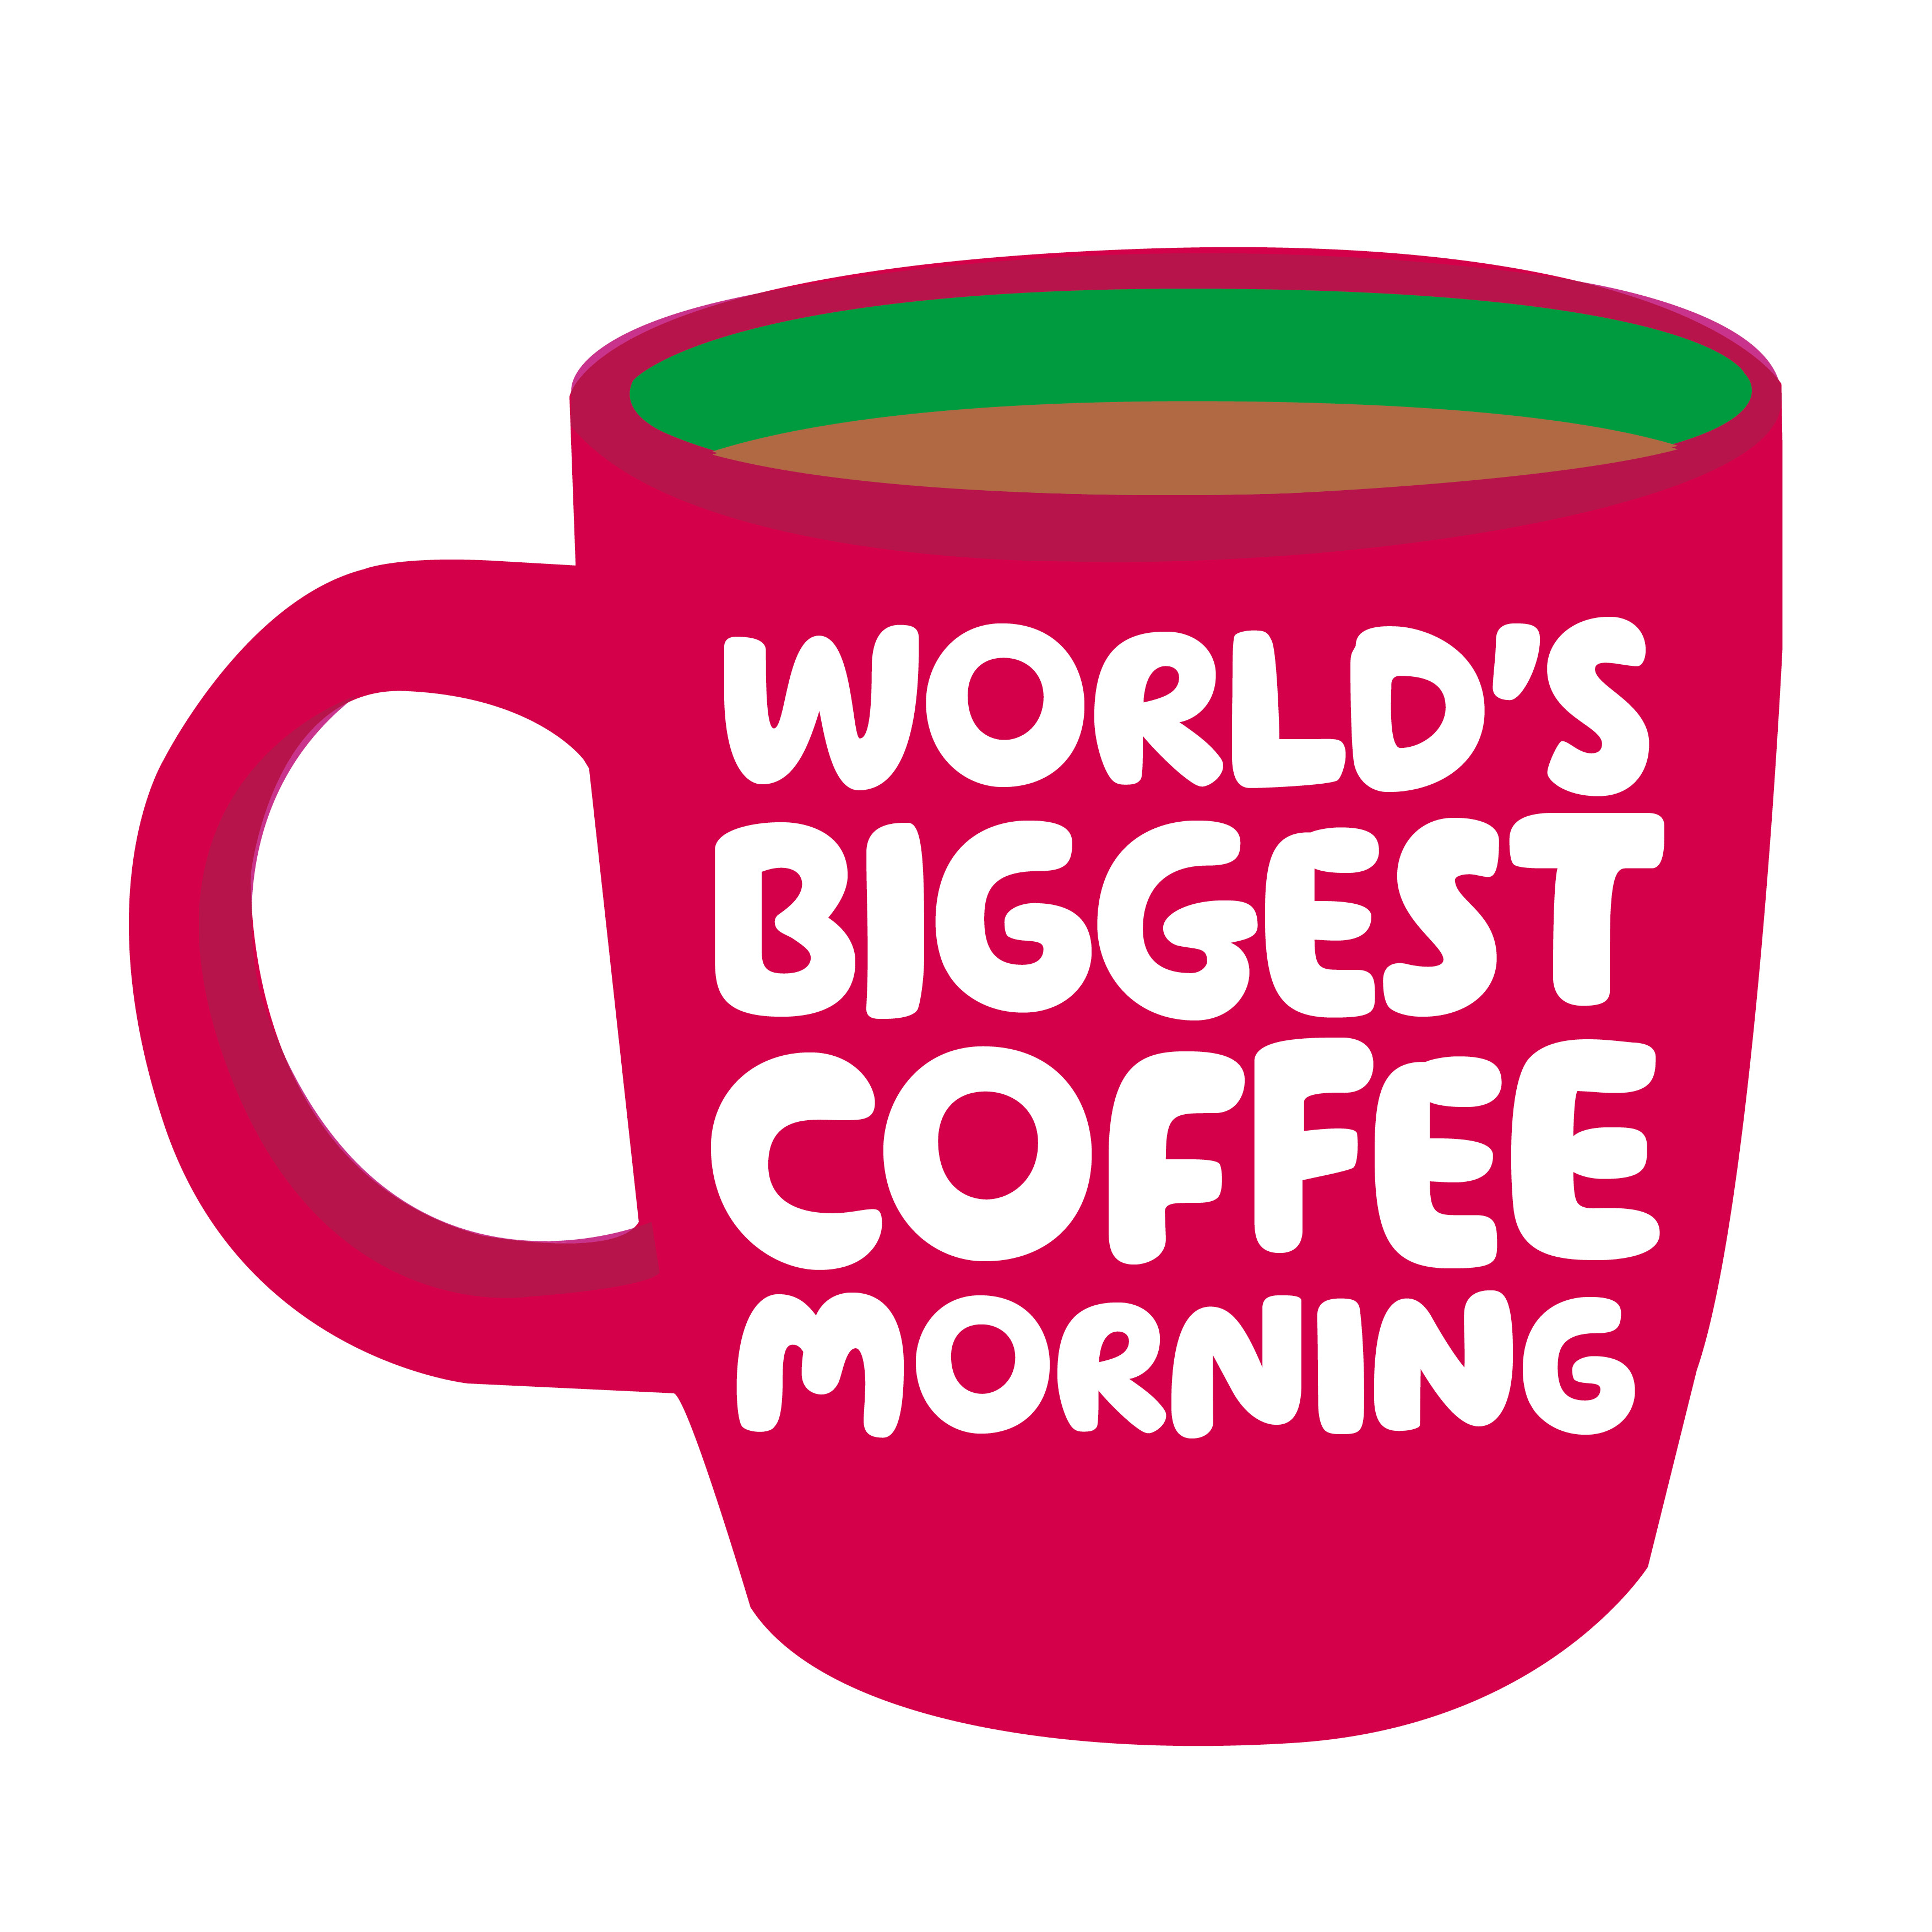 Macmillan coffee morning - Red mug with World's Coffee Morning written on itBiggest